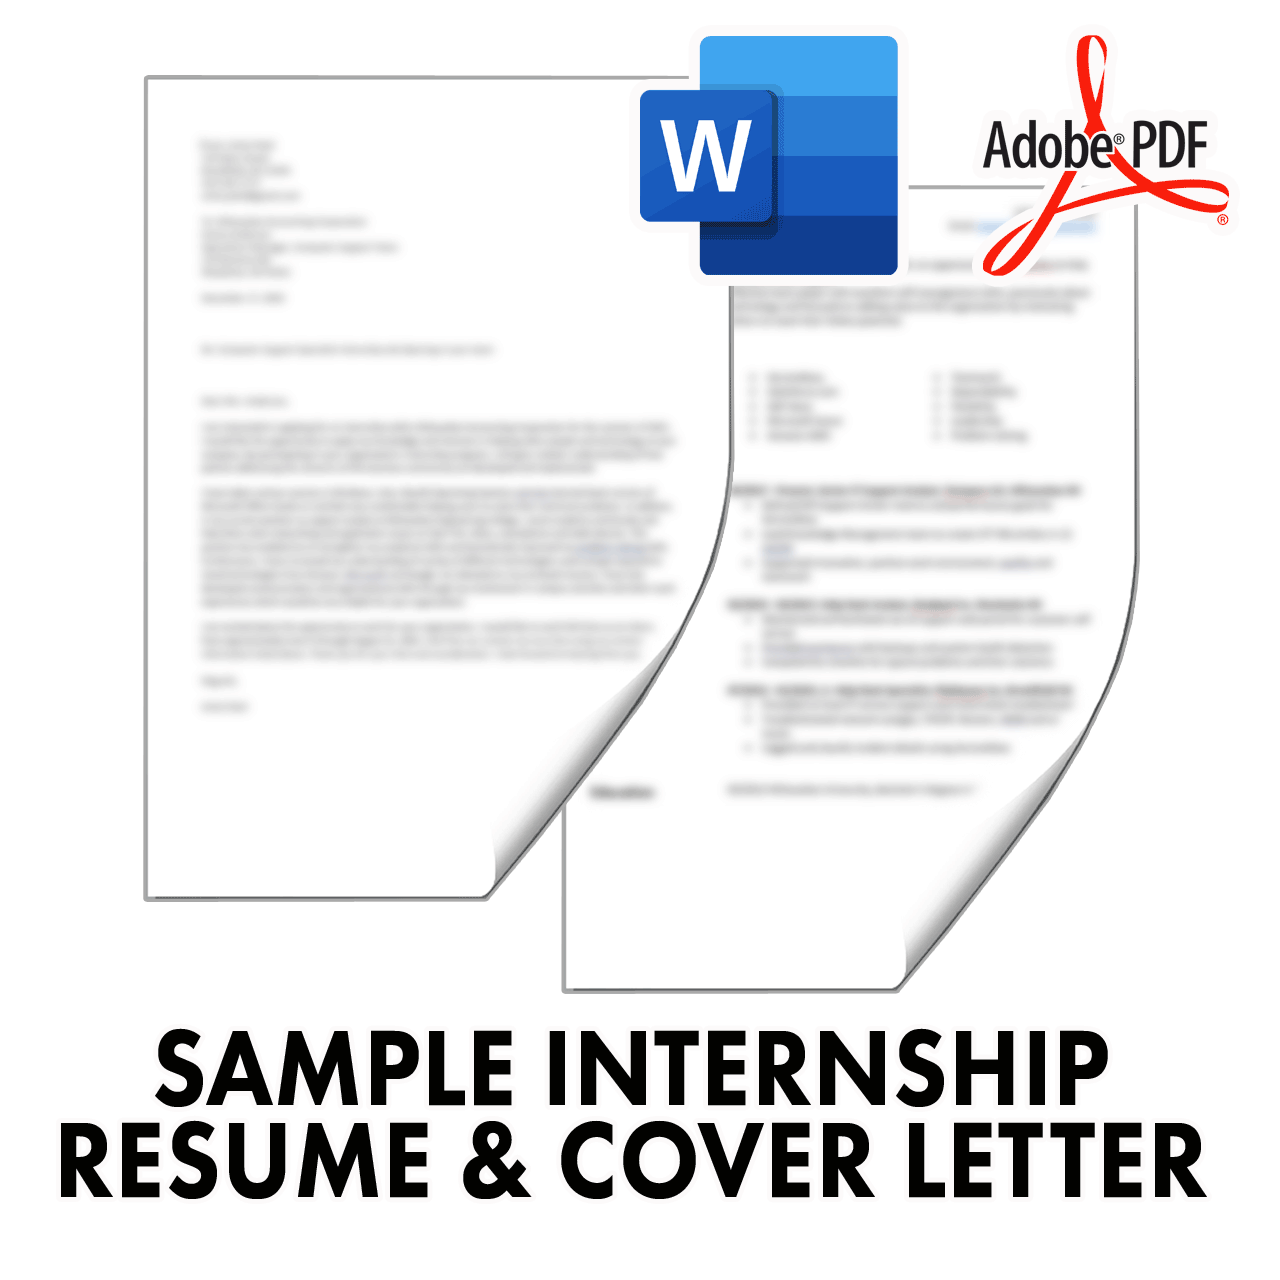 Sample Internship Resume and Cover Letter Templates in Word and PDF